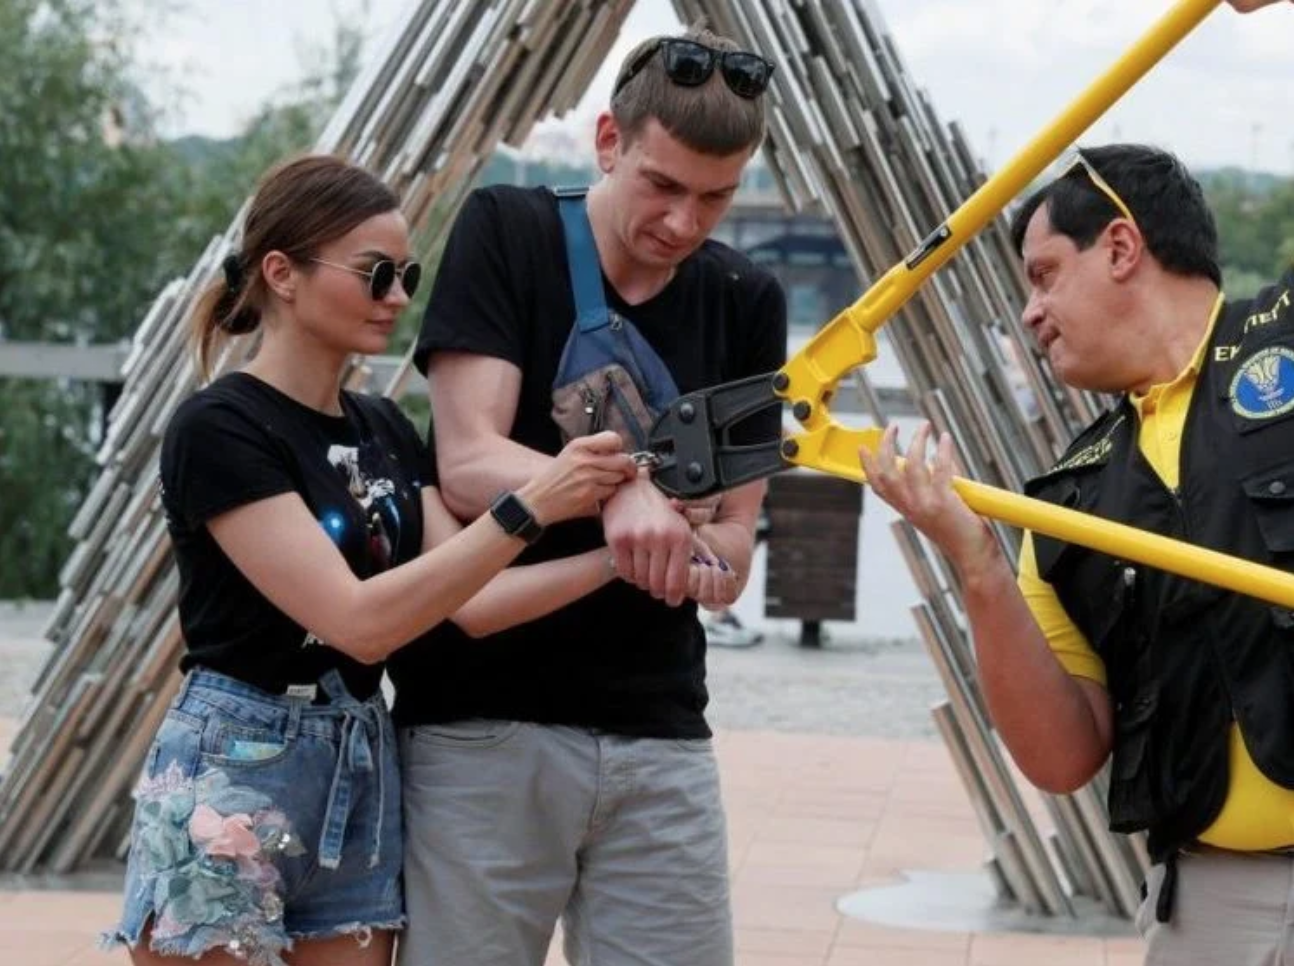 Meanwhile in Ukraine: Couple Parts Ways After 123 Days Handcuffed Together (And Guess What Their Biggest Complaint Was)